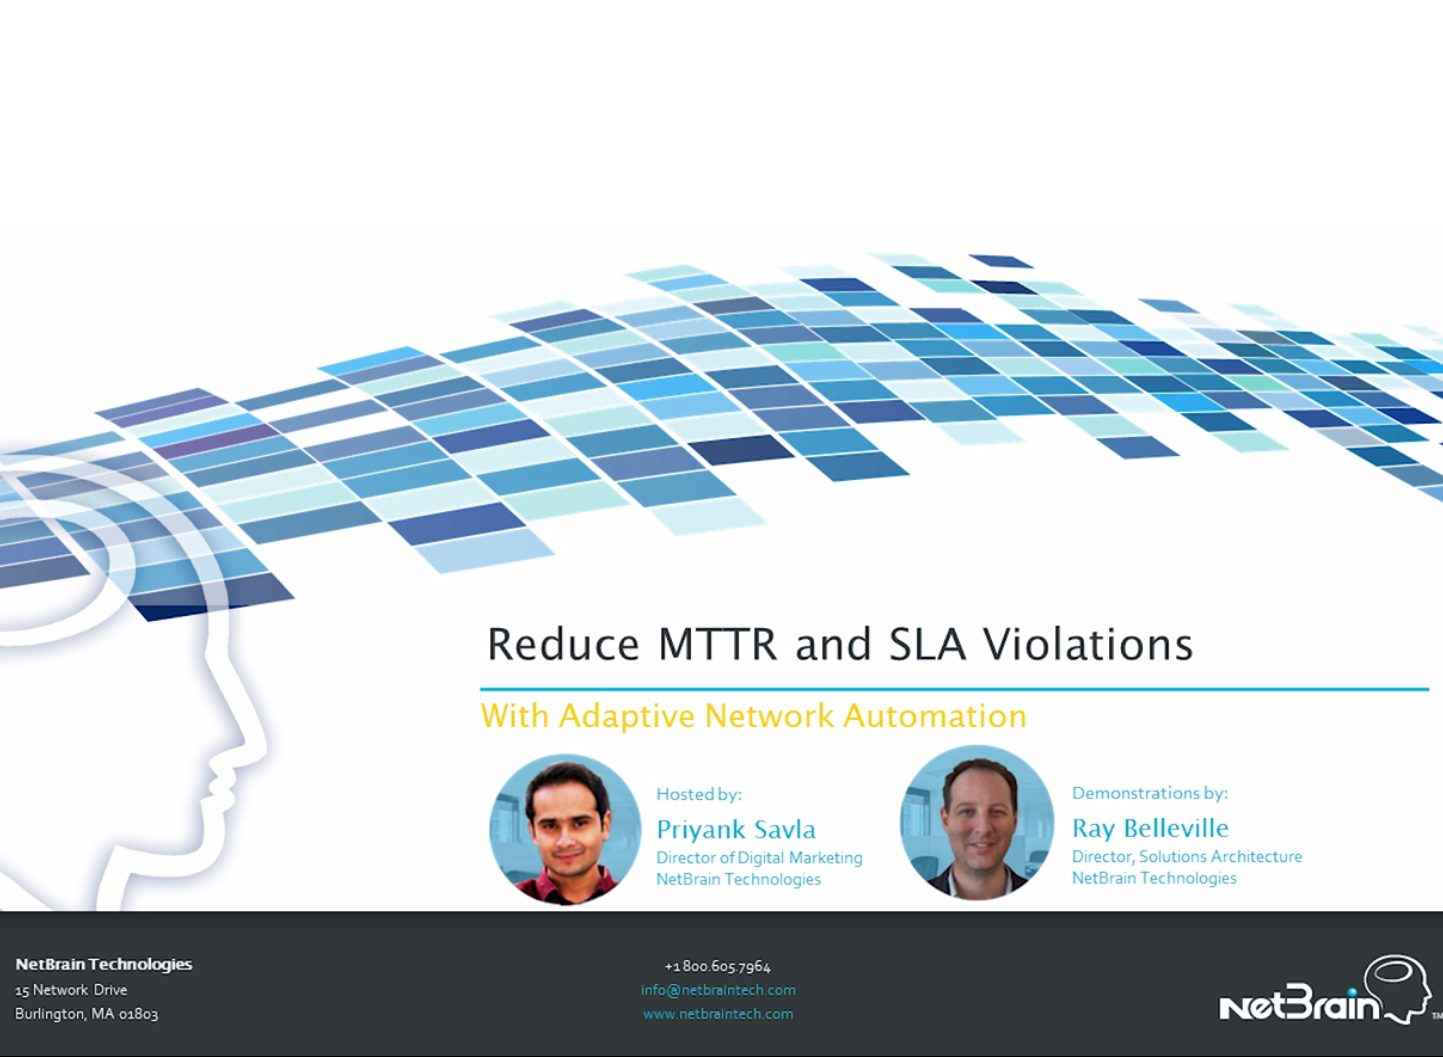 Reducing MTTR and SLA Violations with Automation